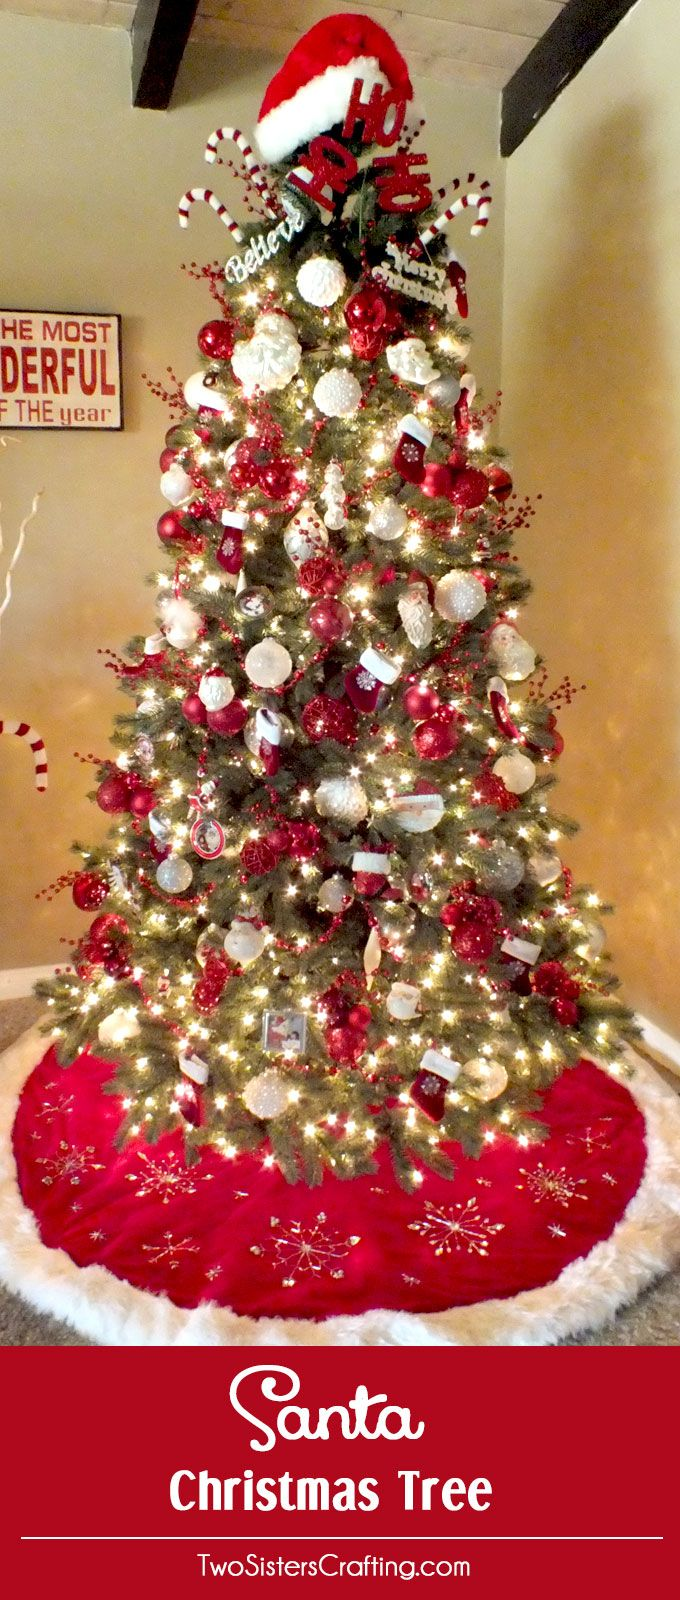 Best 25+ Christmas trees ideas on Pinterest | Christmas tree, Christmas  tree decorations and White christmas decorations